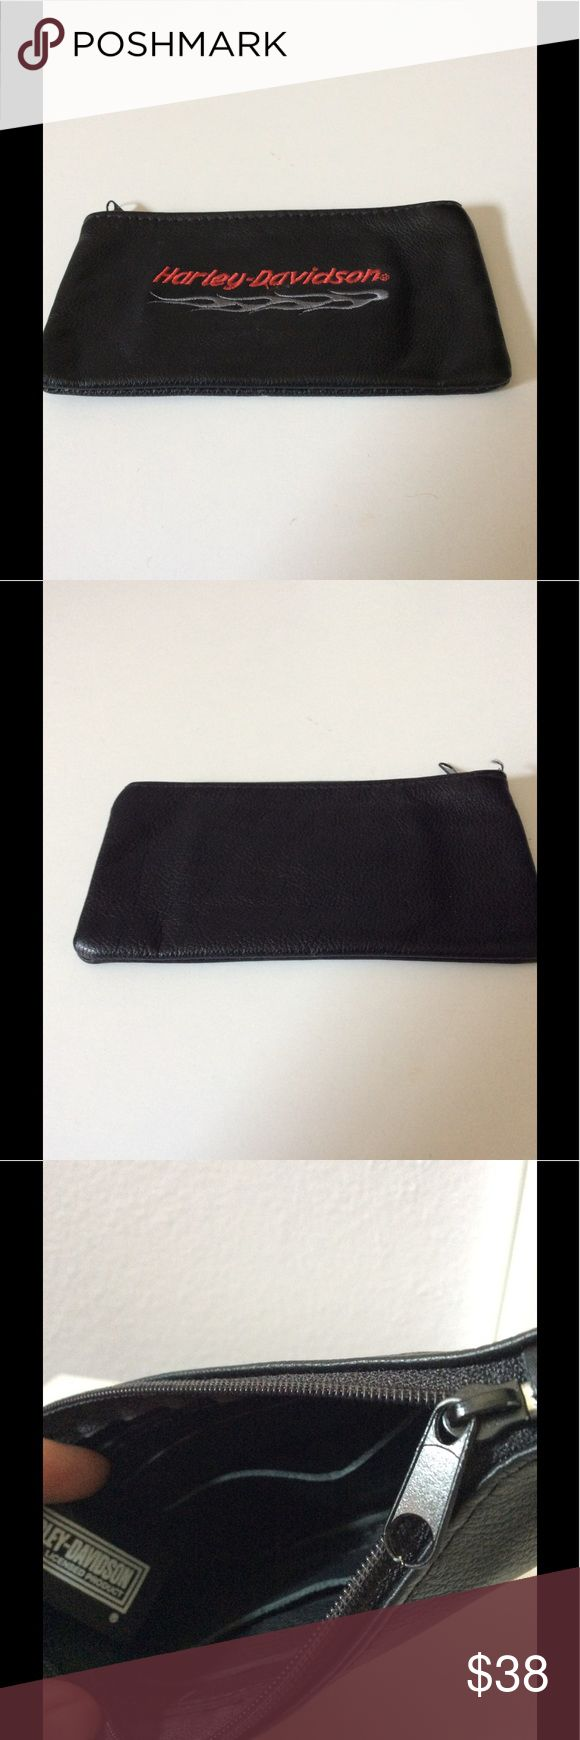 Harley Davidson Wallet Harley Davidson leather wallet with zipper closure...it has a few cards slots inside....in very good condition...no rips or teas. Harley-Davidson Bags Wallets